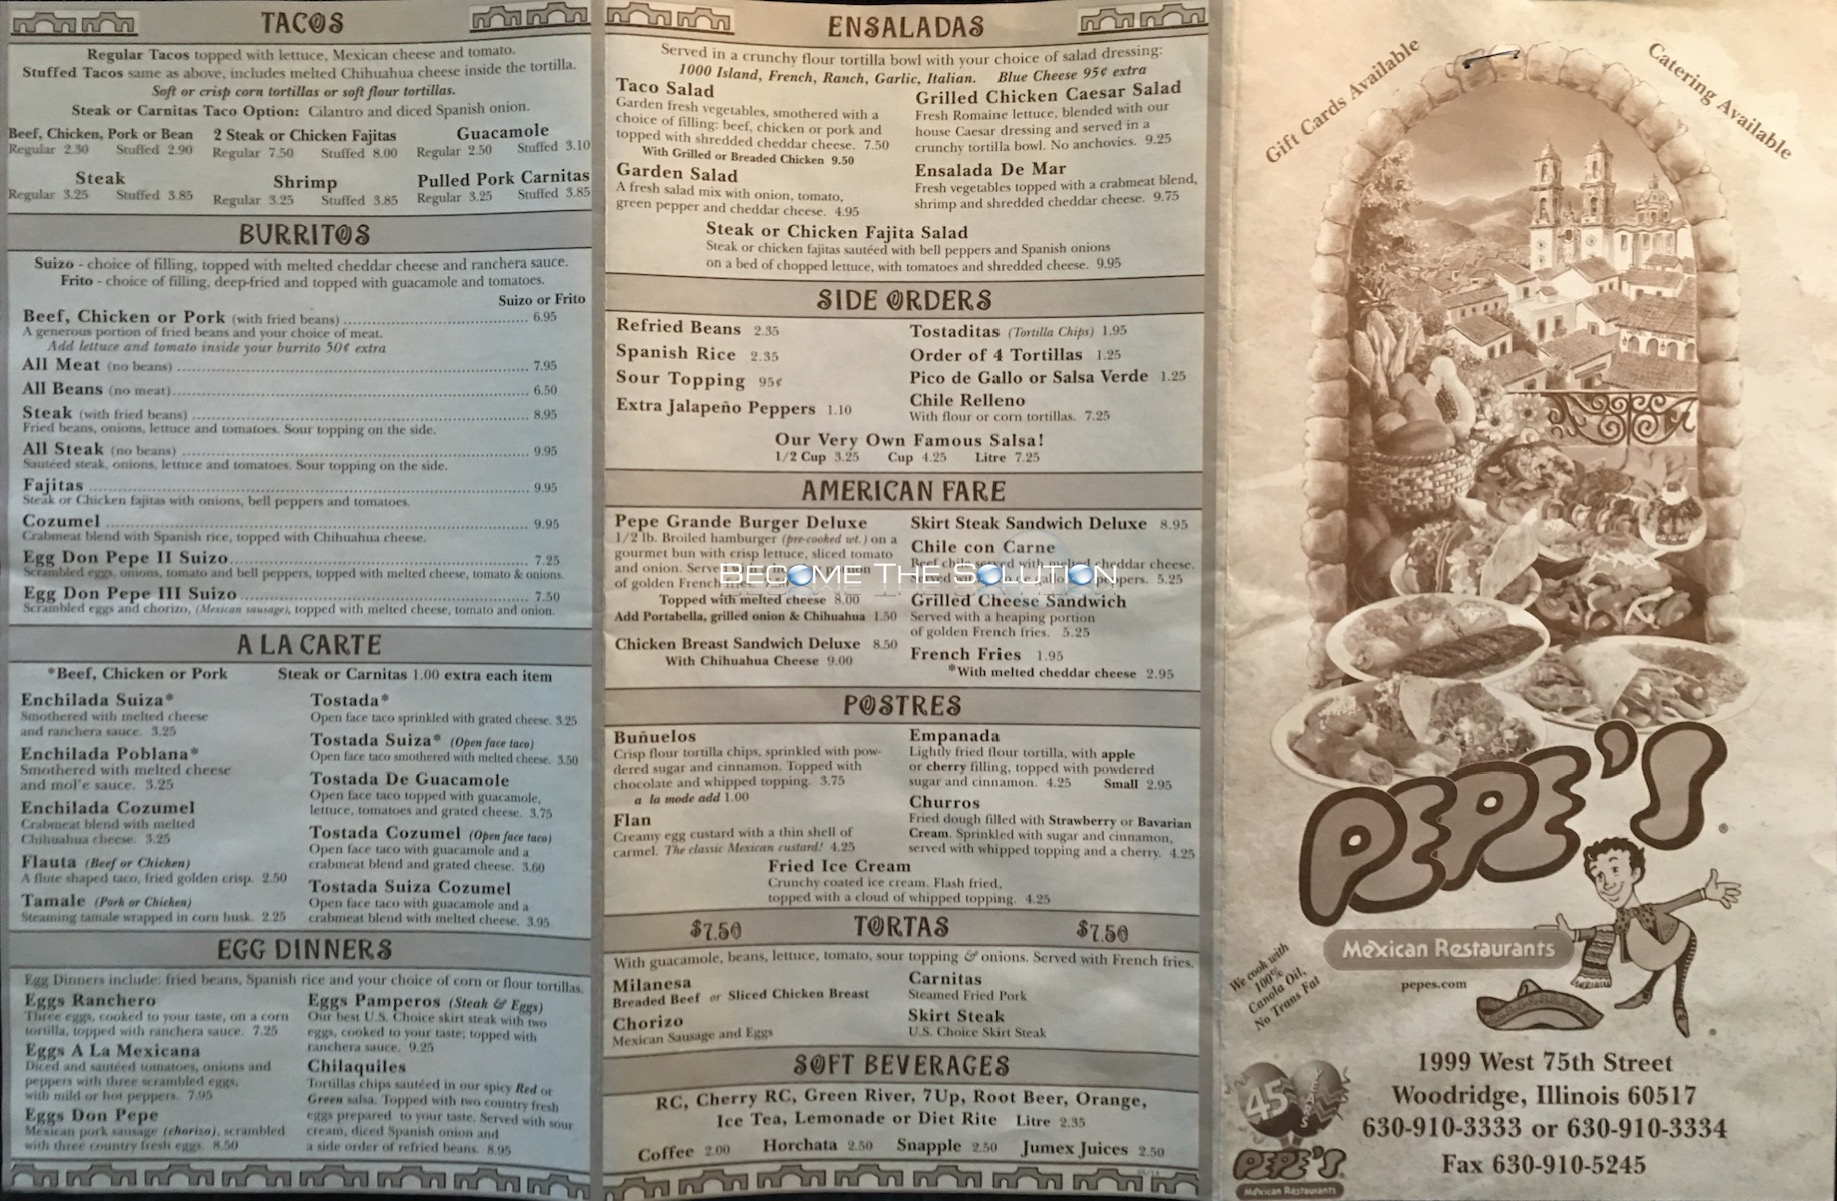 Pepe's Mexican Restaurant Chicago Menu 1